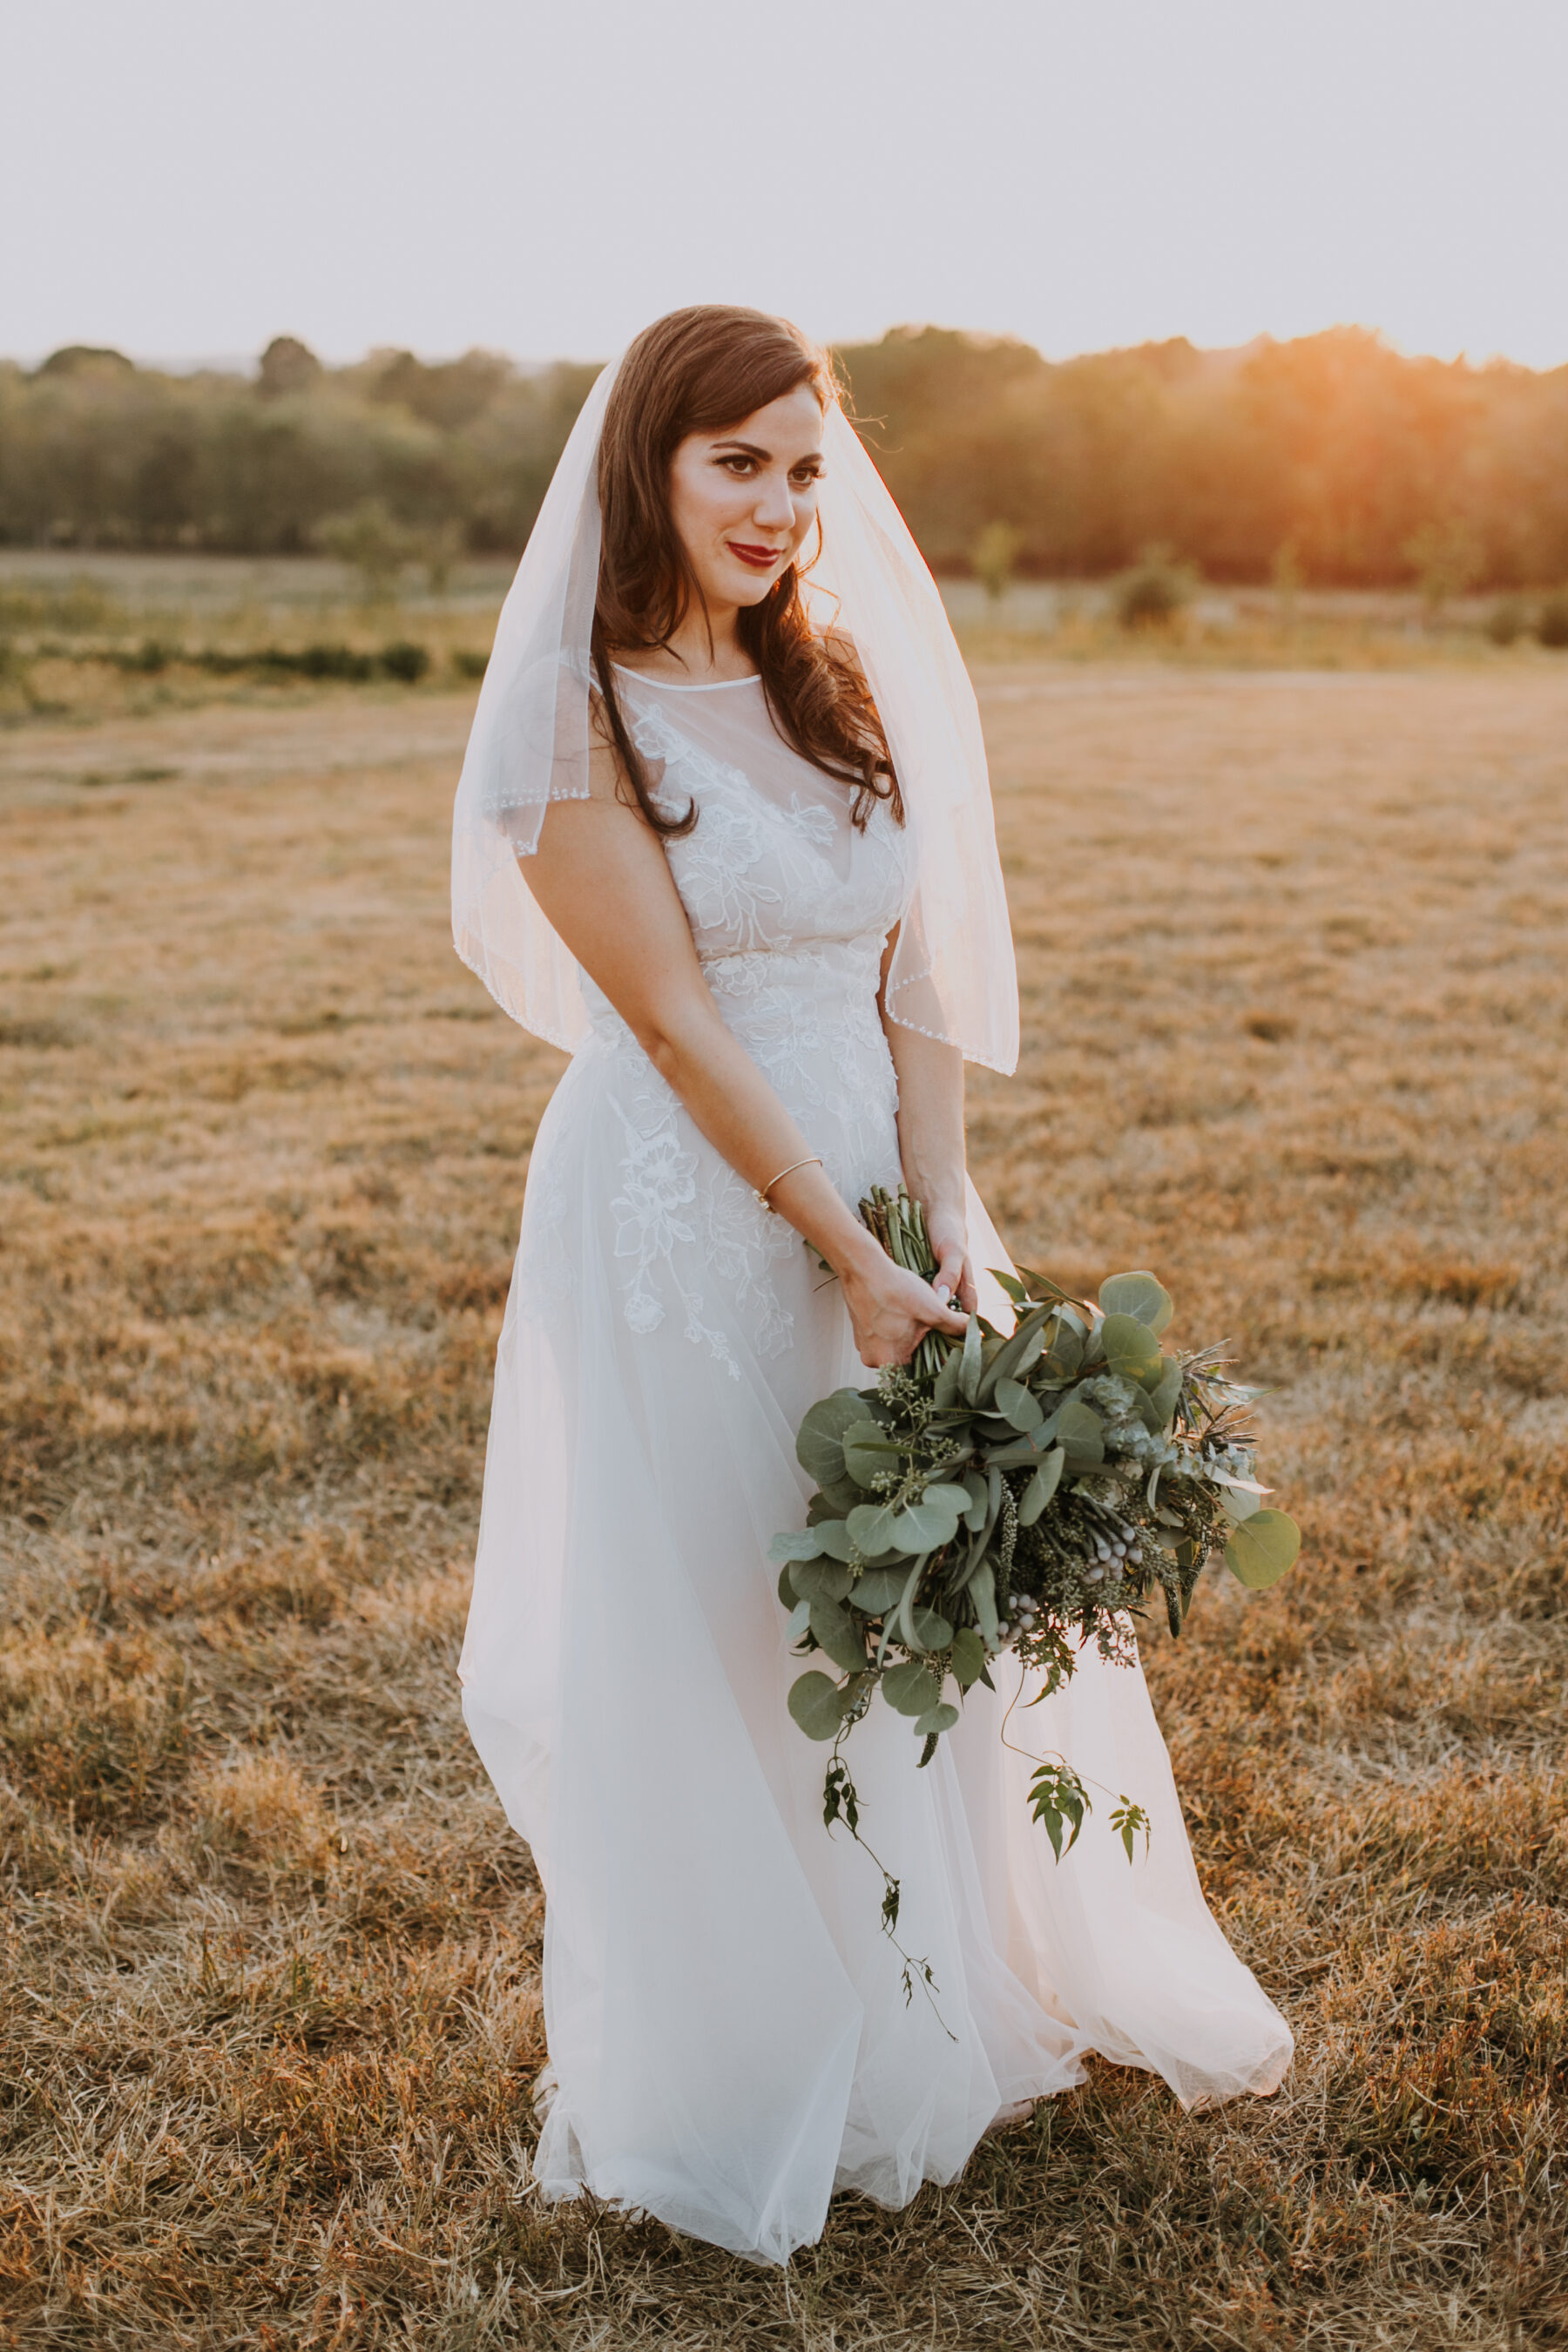 Bridal portrait: Nashville Wedding with Beautiful Views by Teale Photography featured on Nashville Bride Guide